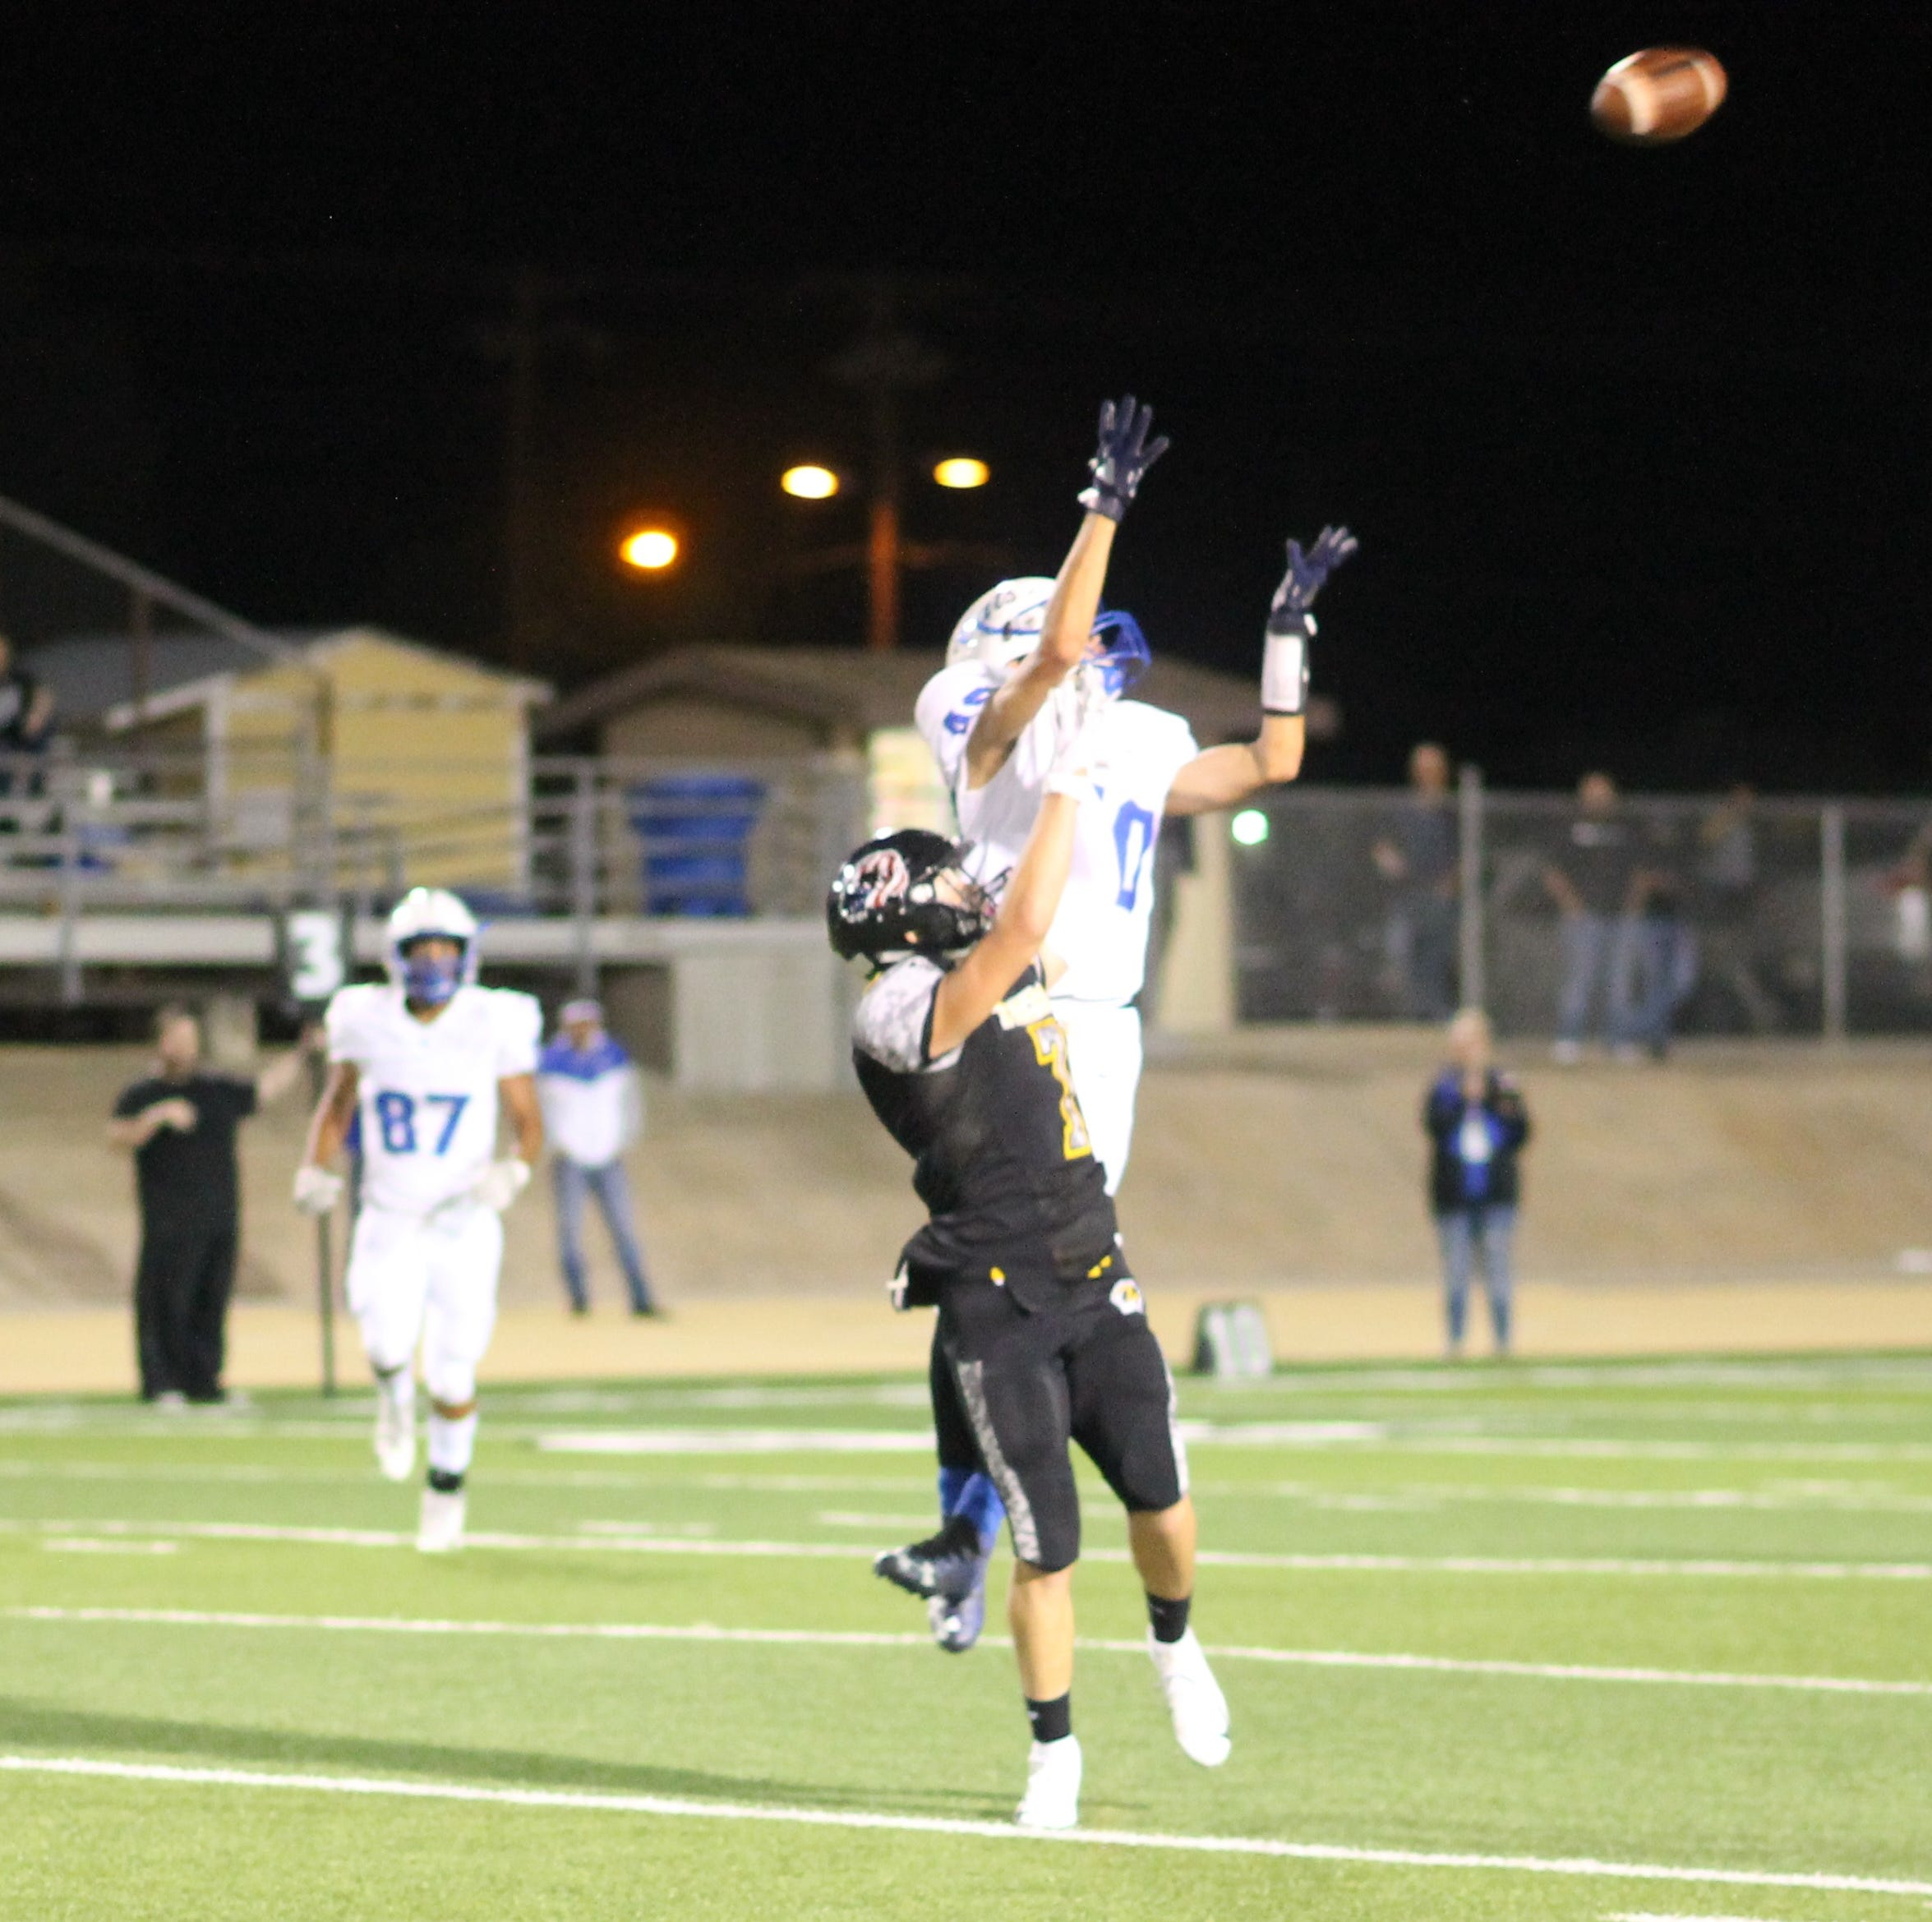 Alamogordo Tigers defanged by Lovington Wildcats 45-7